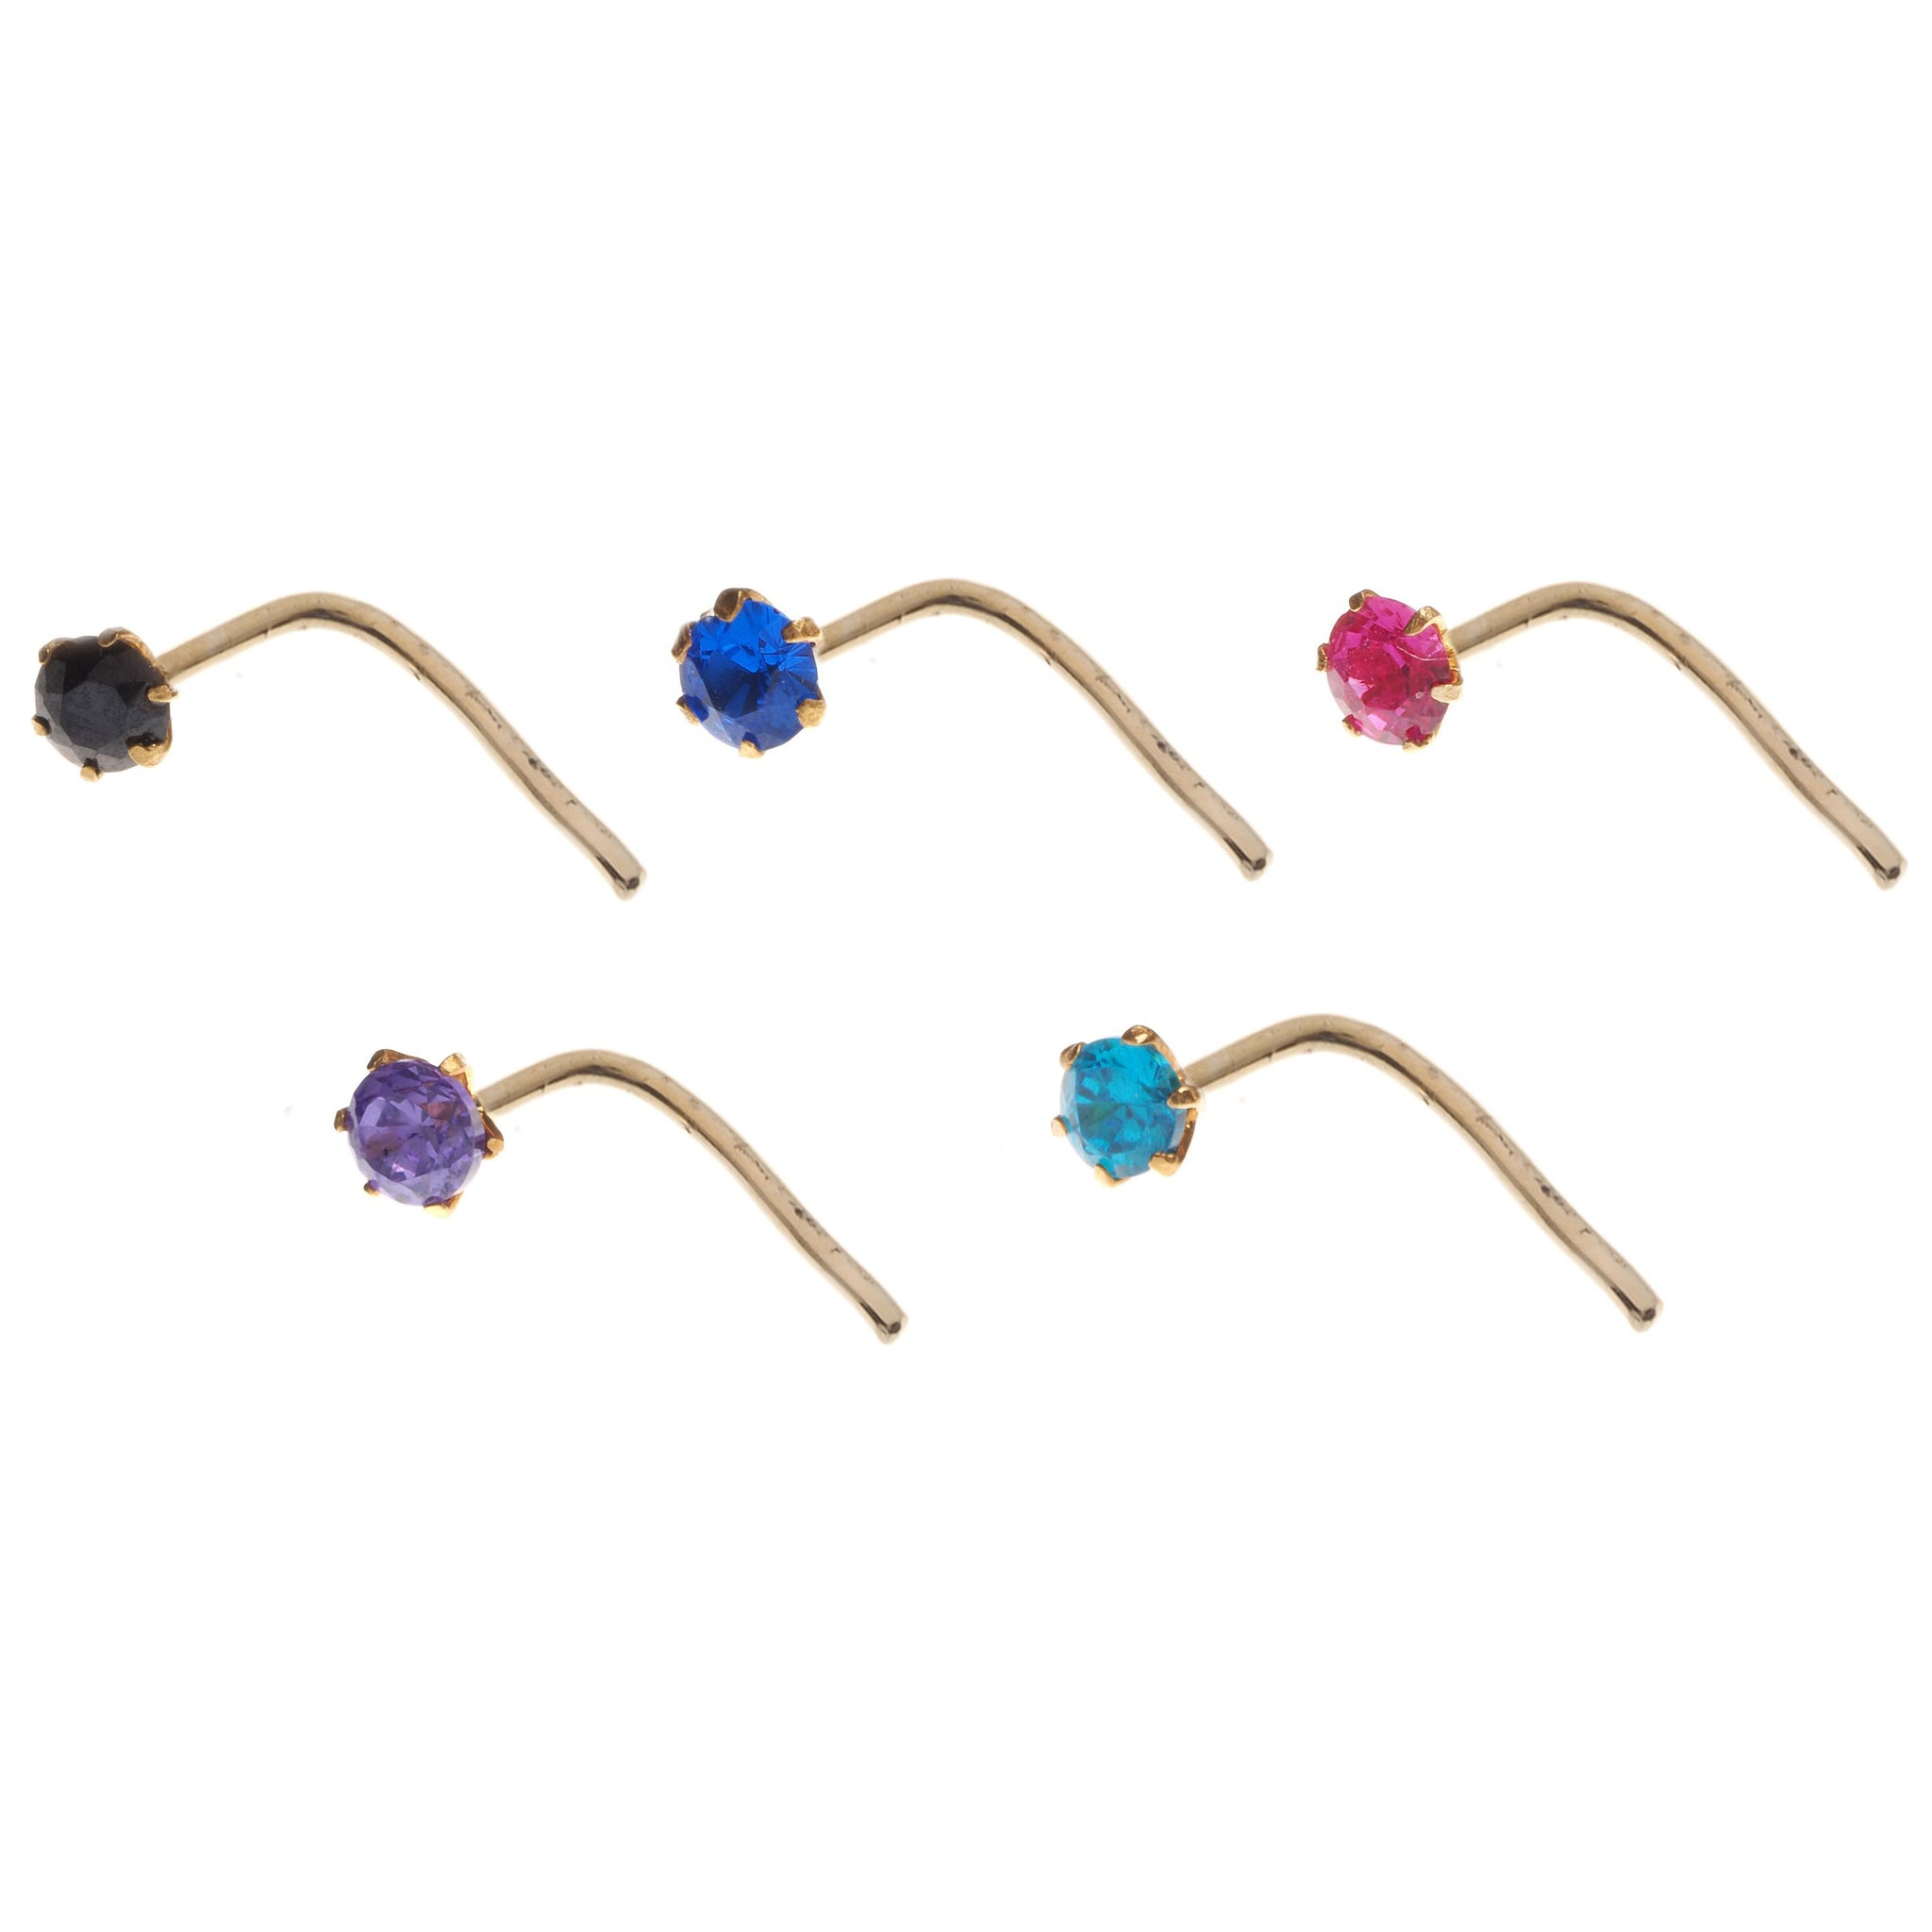 18ct Gold Nose Stud L Shape Back with Cubic Zirconia Stone (NS-4677L)